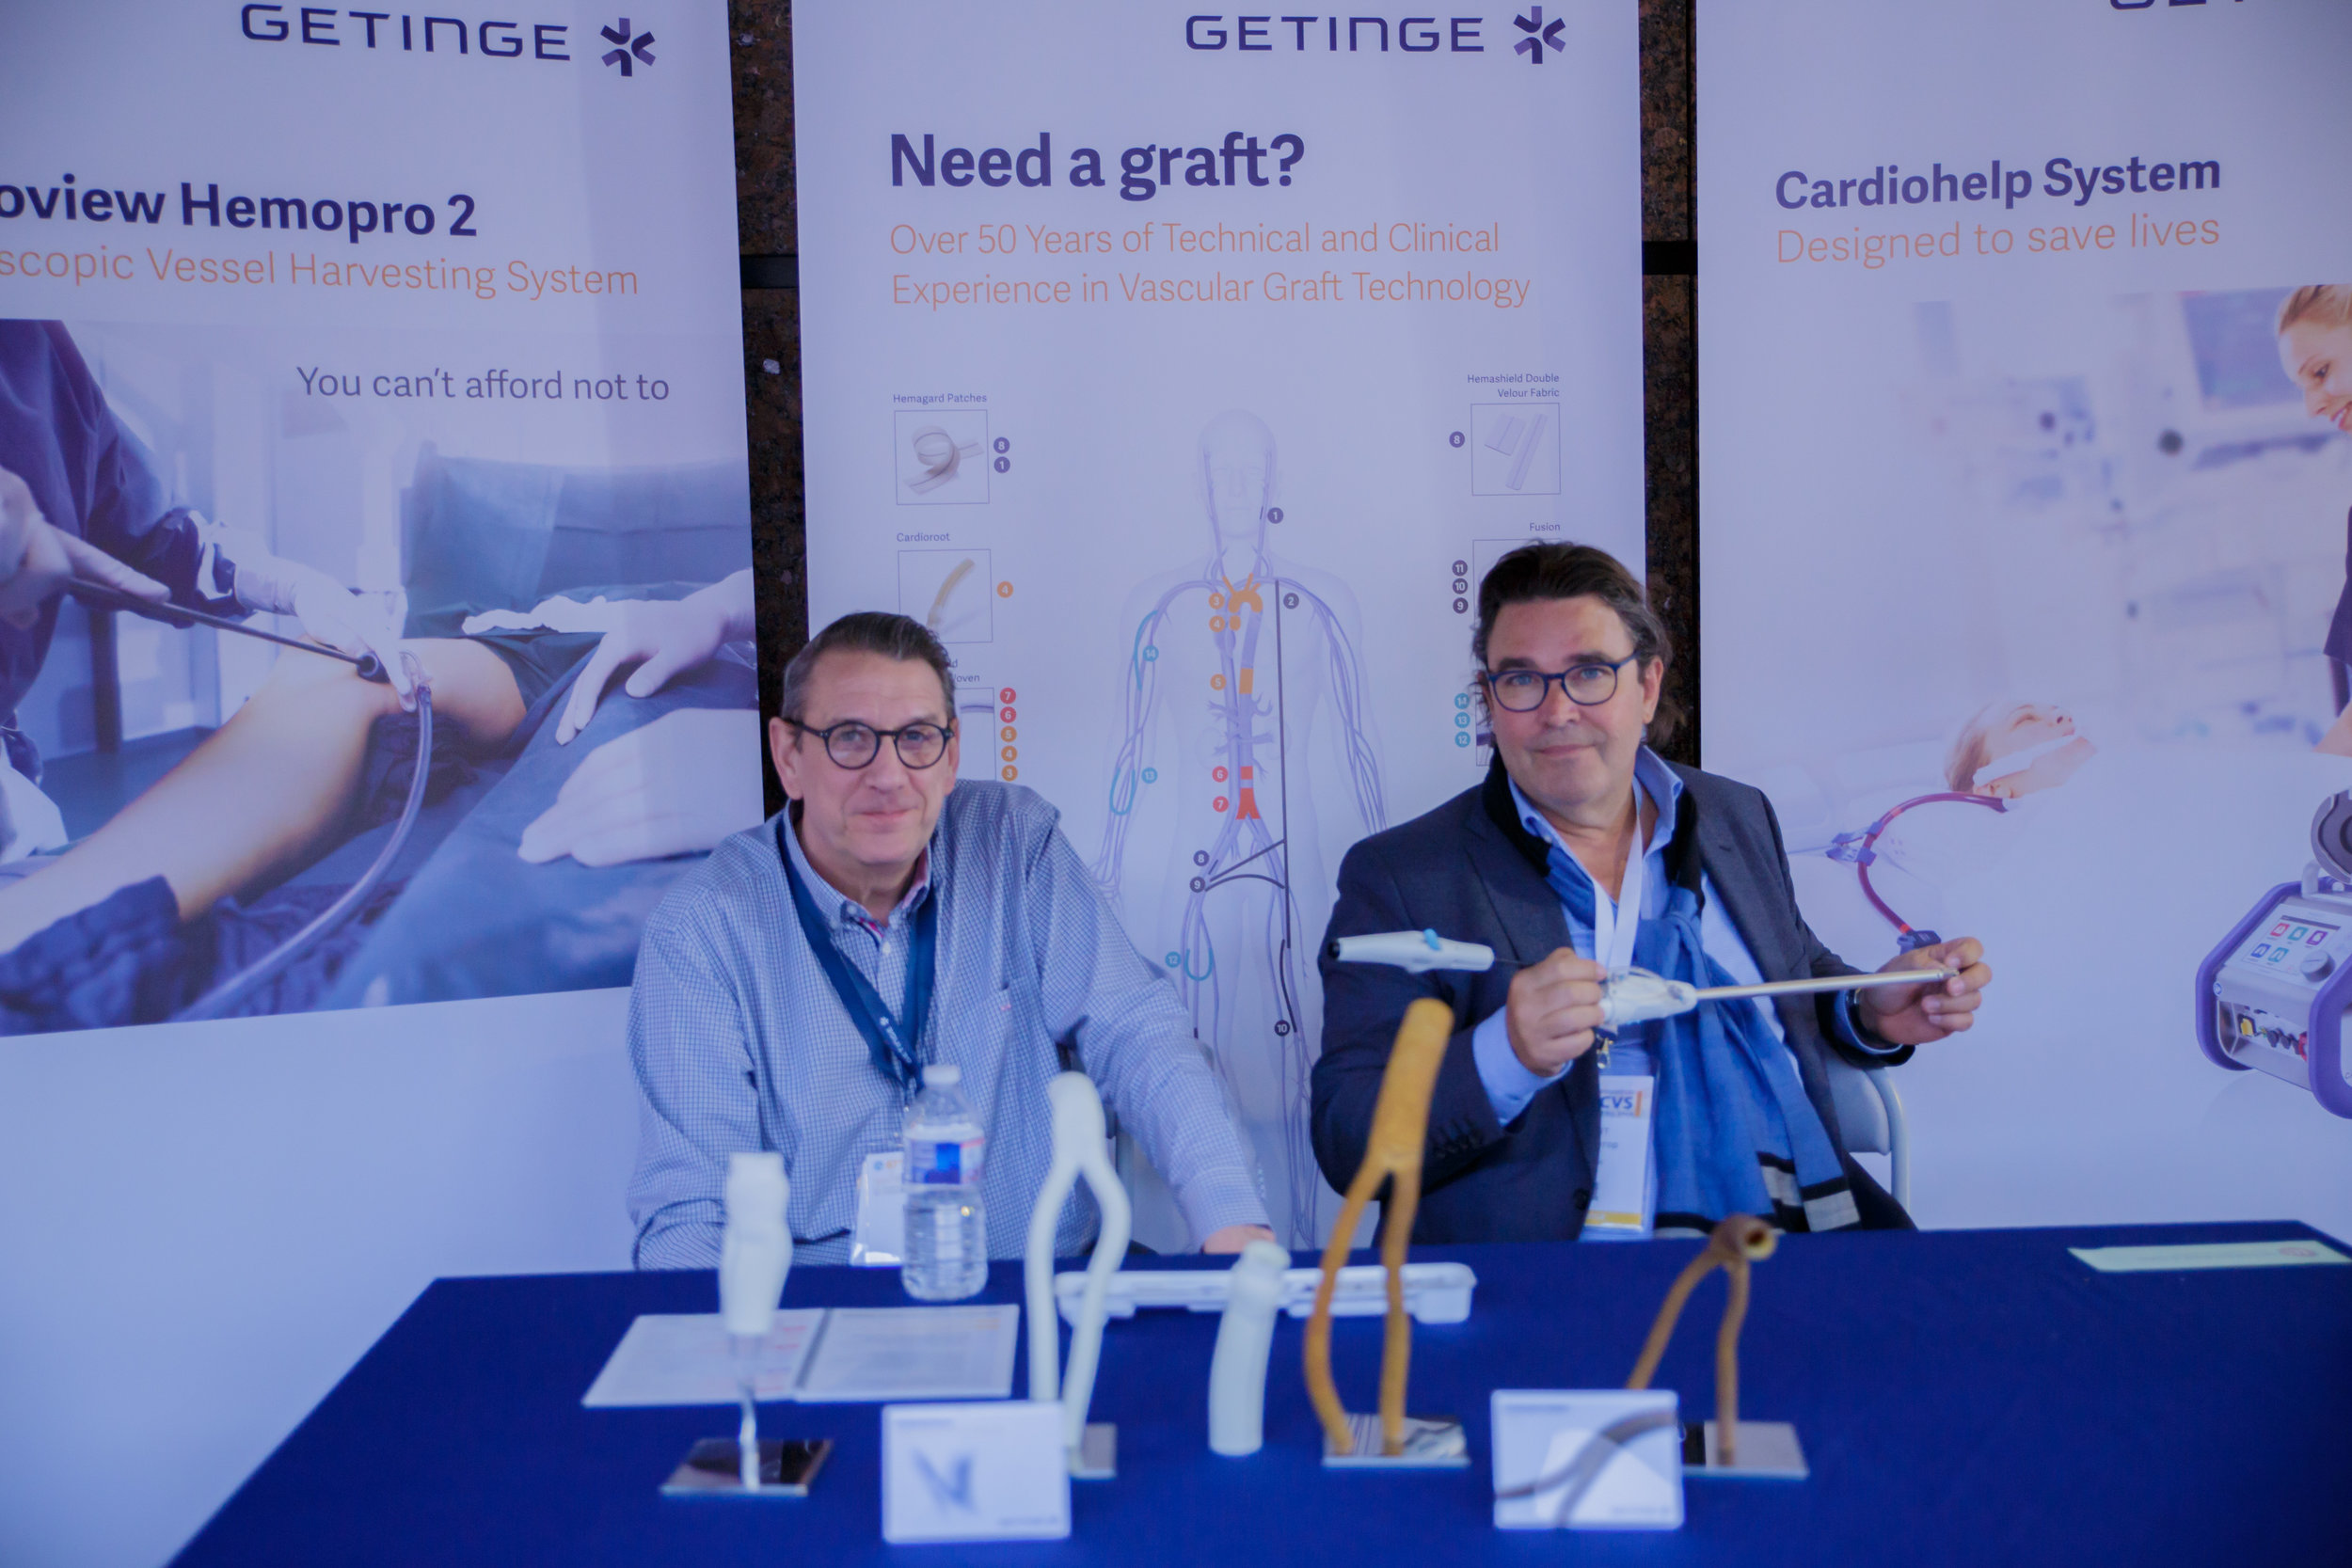 getinge at the  67th International Congress of the European Society of Cardiovascular and EndoVascular Surgery